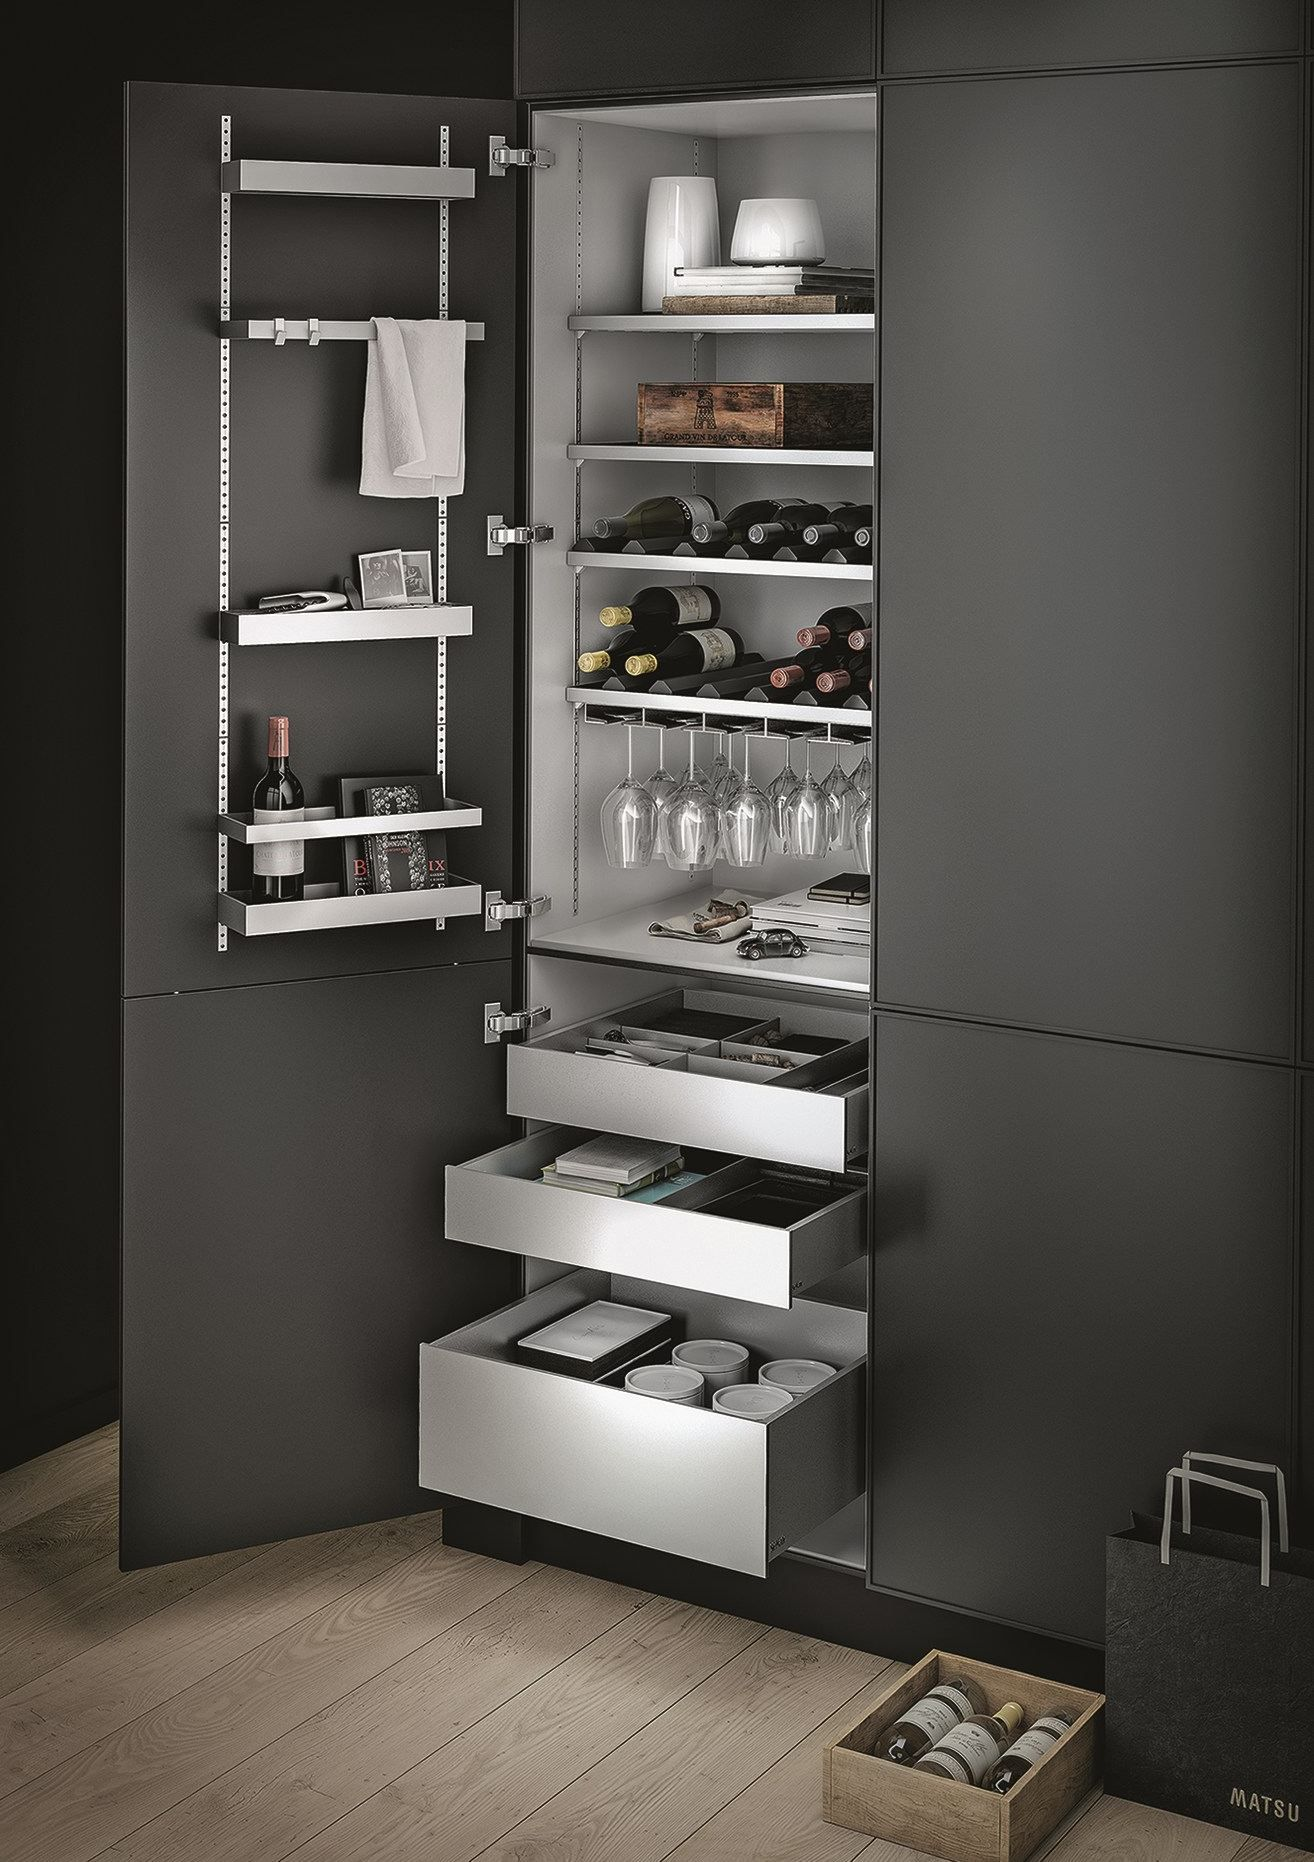 ALUMINIUM KITCHEN ACCESSORY MULTIMATIC BY SIEMATIC | DESIGN SPEZIELL ®